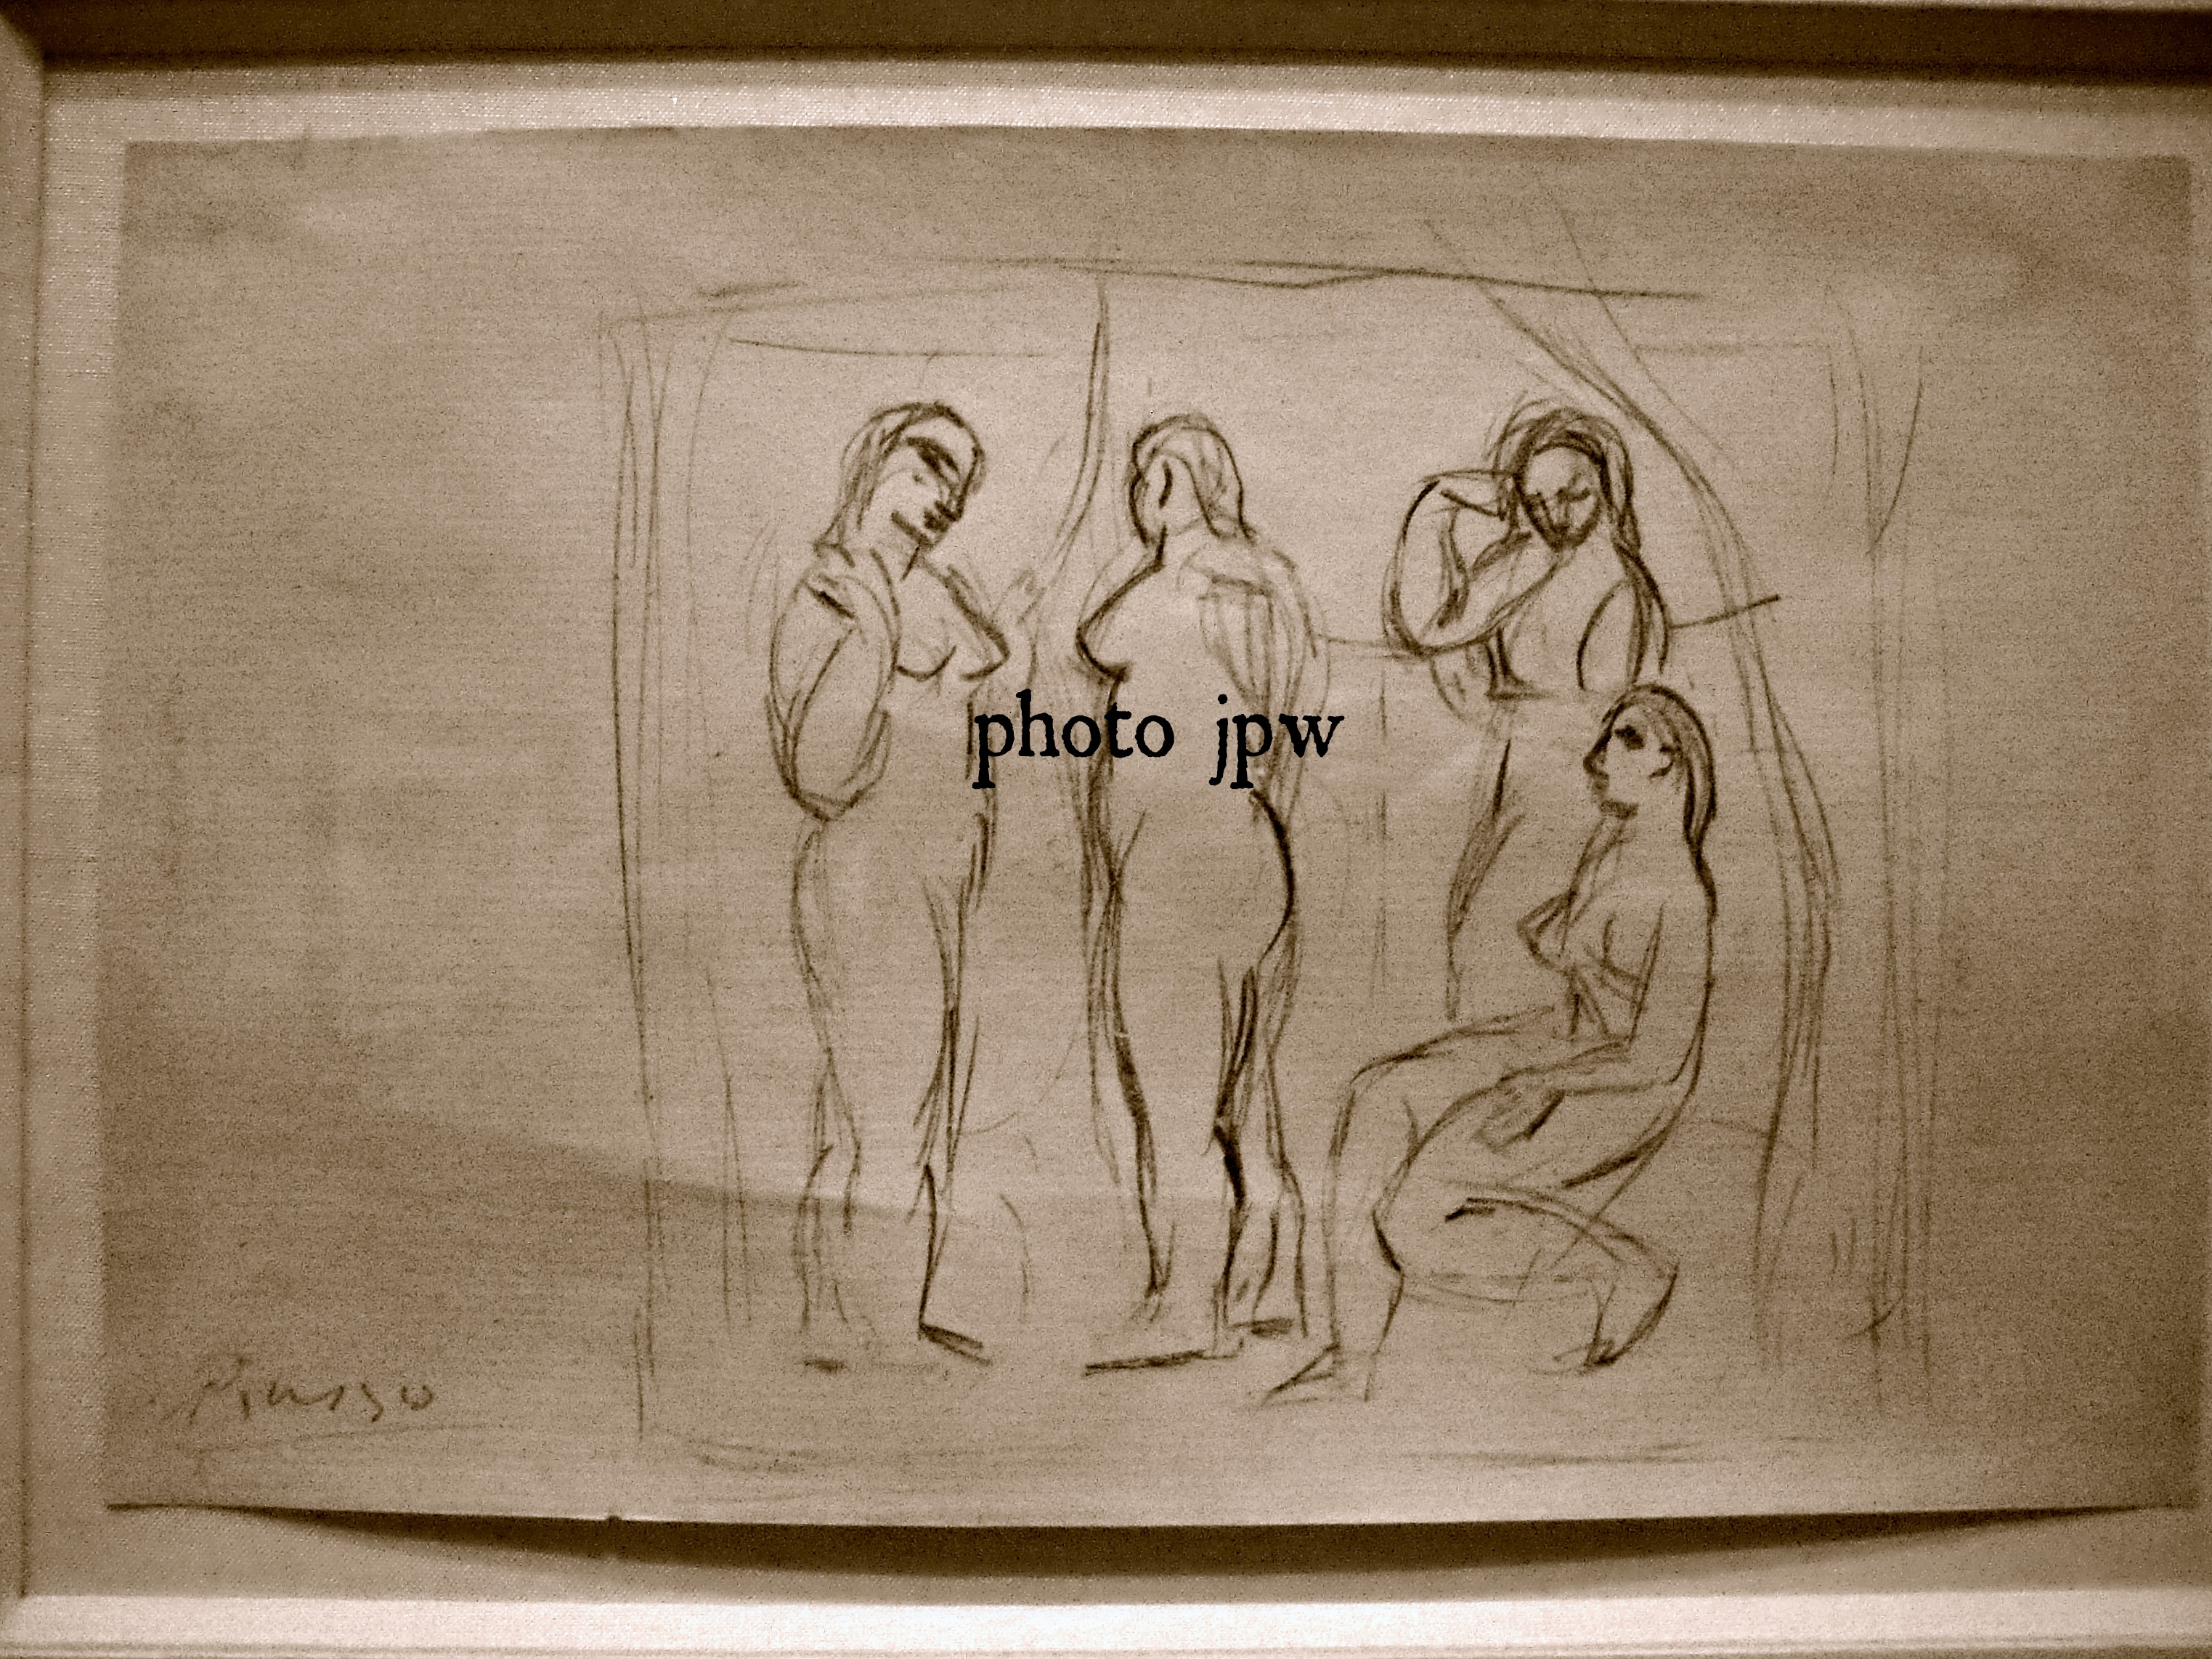 Picasso, Study of Four Nudes, Paris, 1906-07.